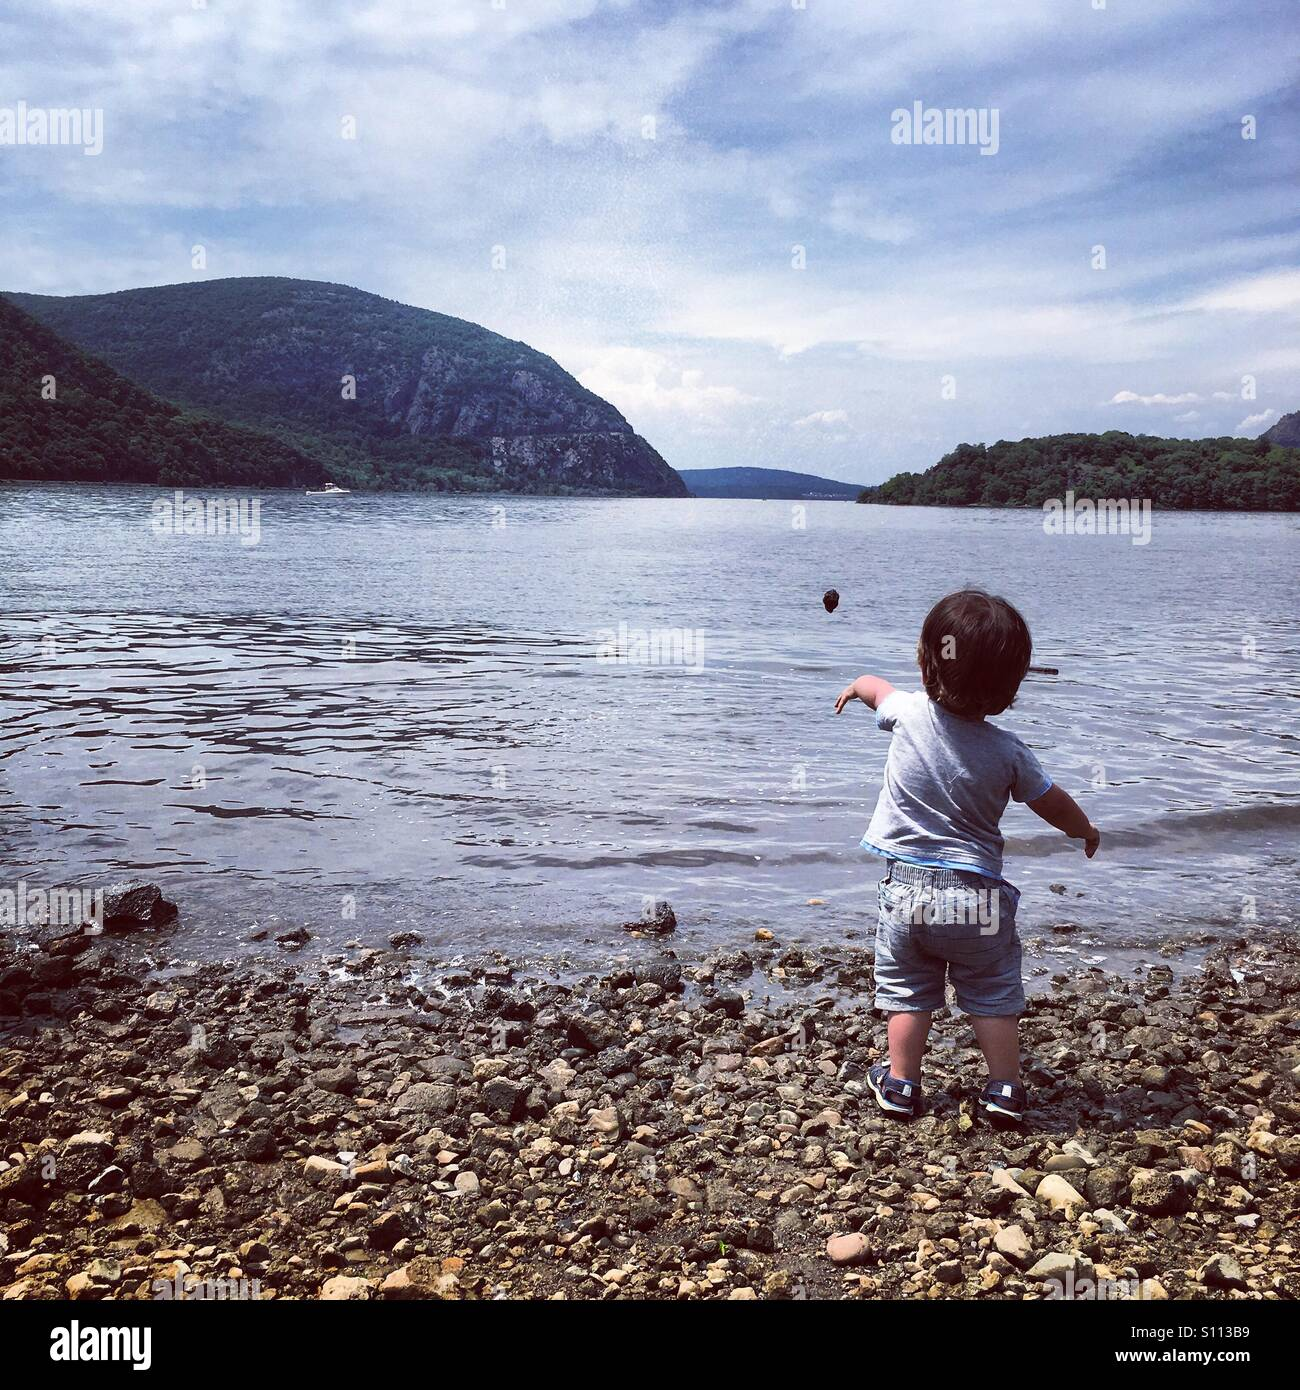 Throwing rocks in the Hudson - Stock Image